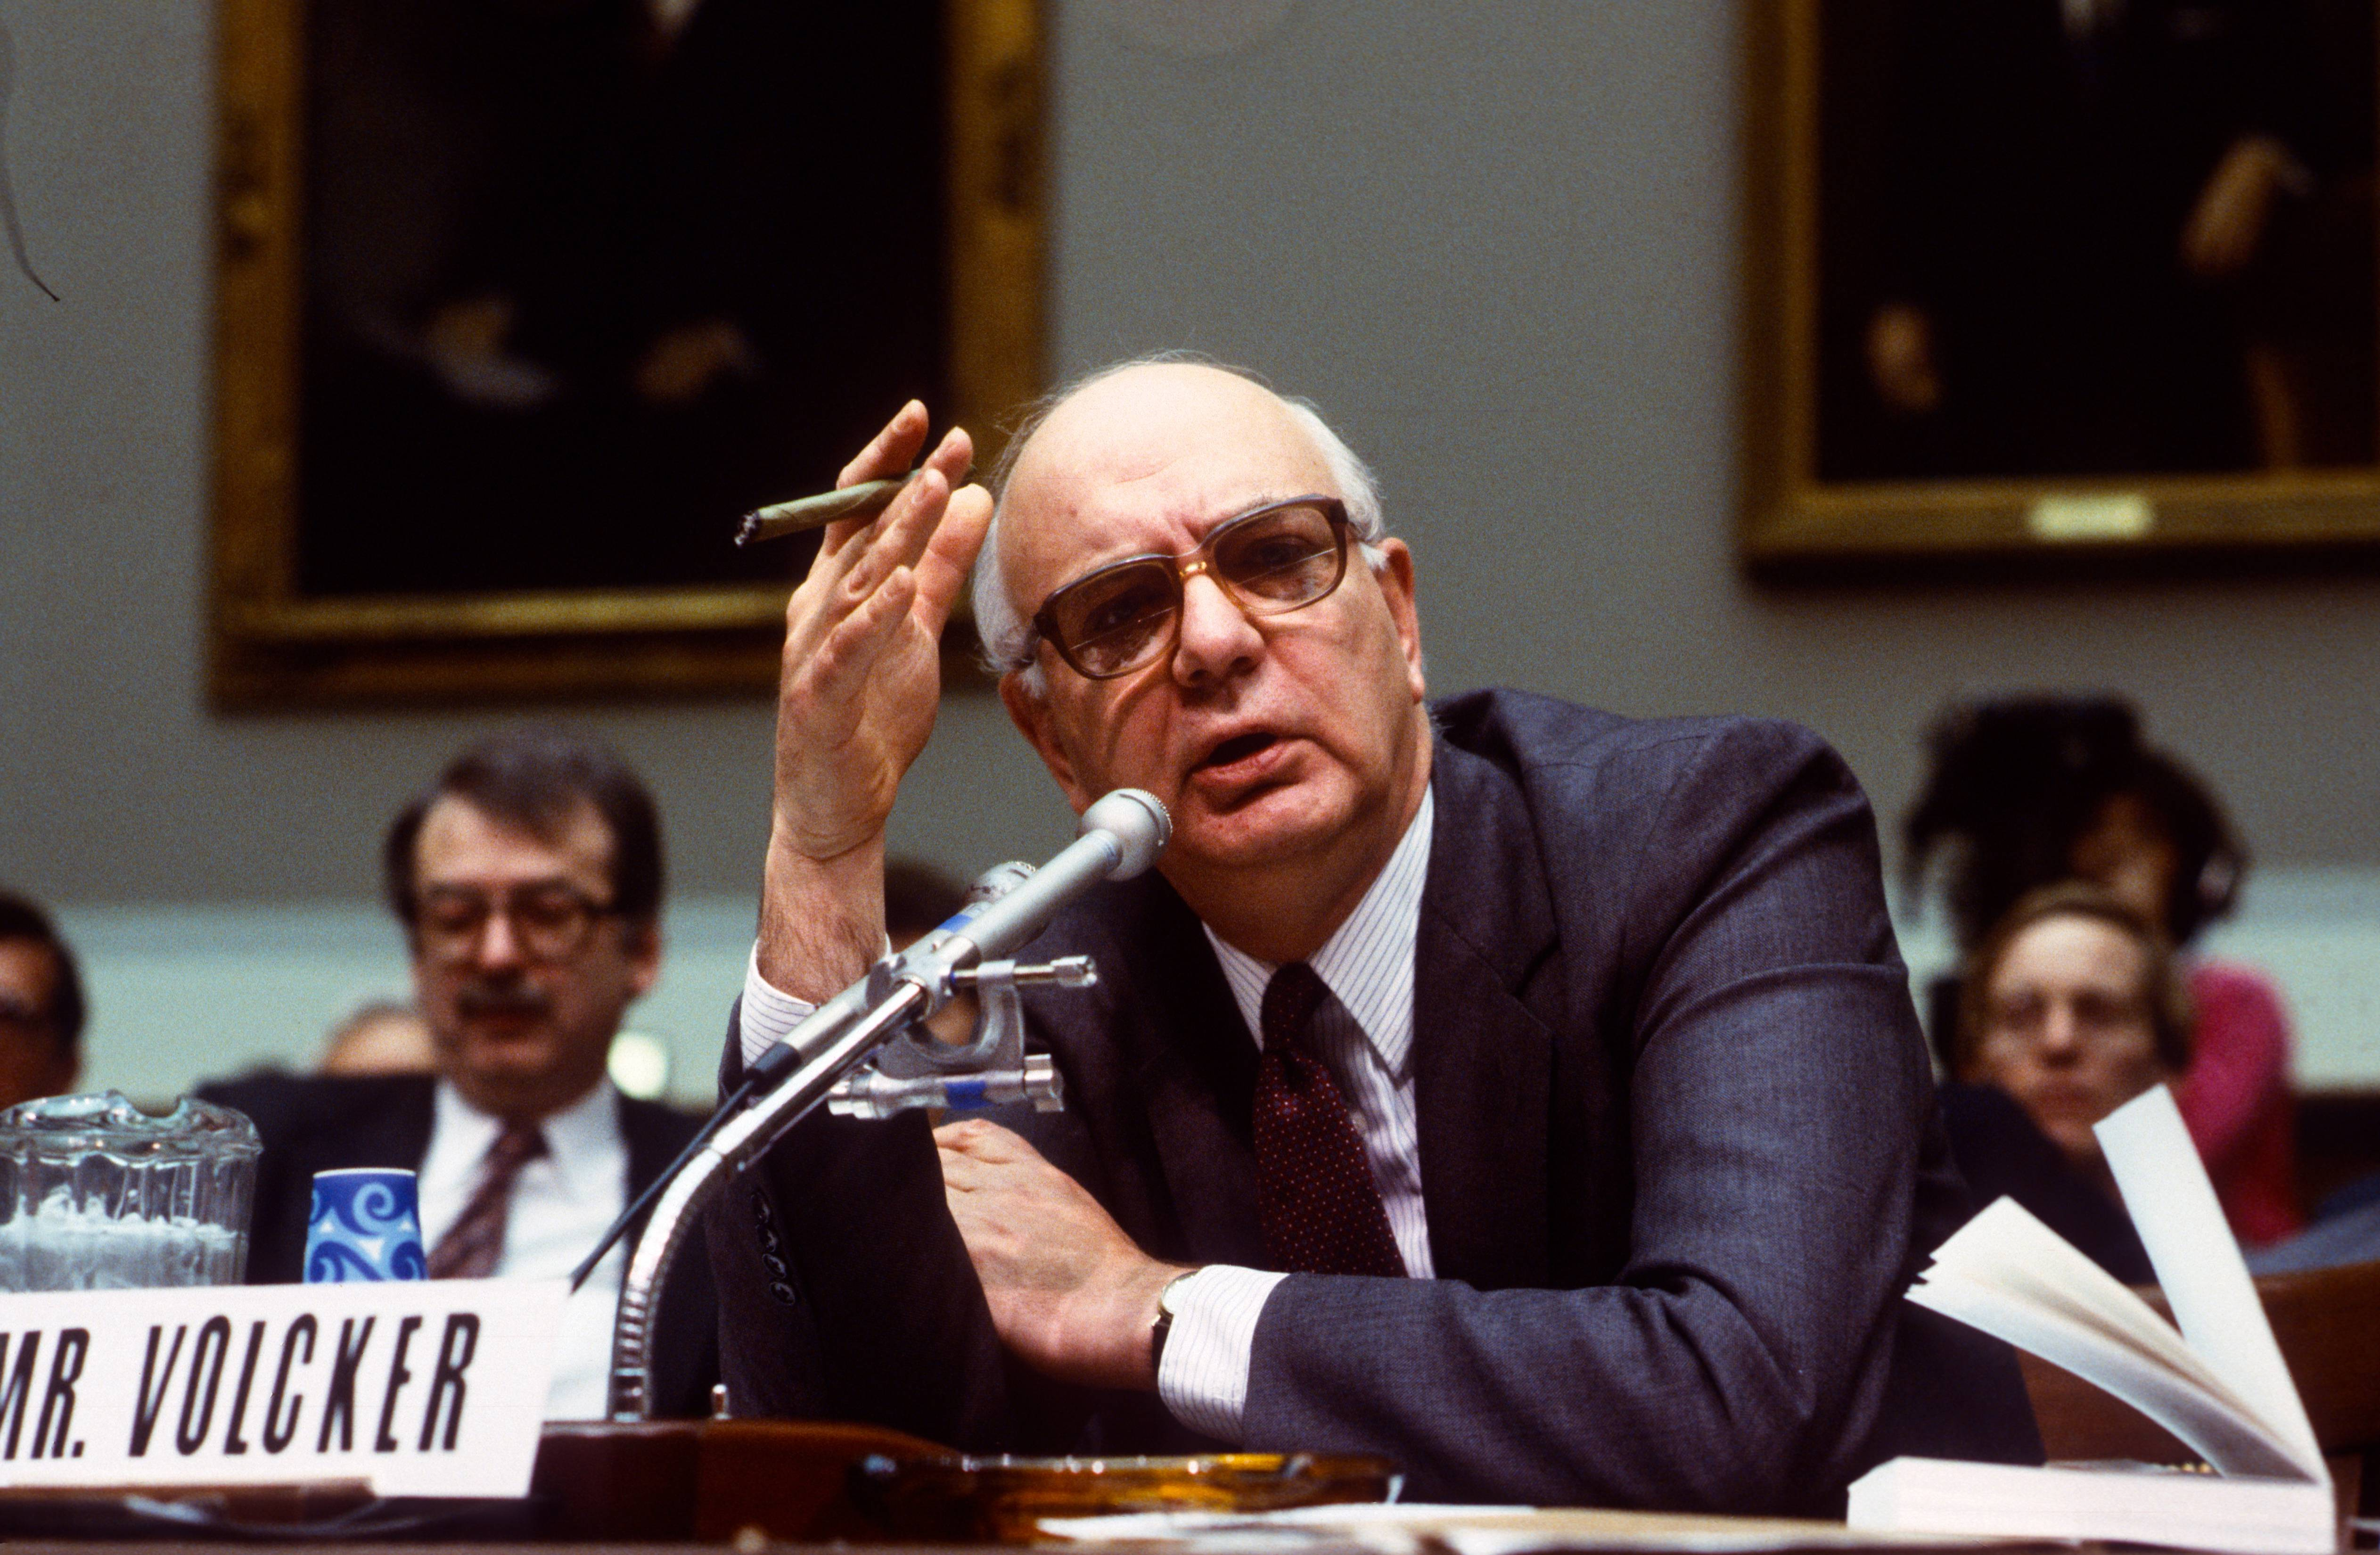 Paul Volcker Testifies Before Banking Committee